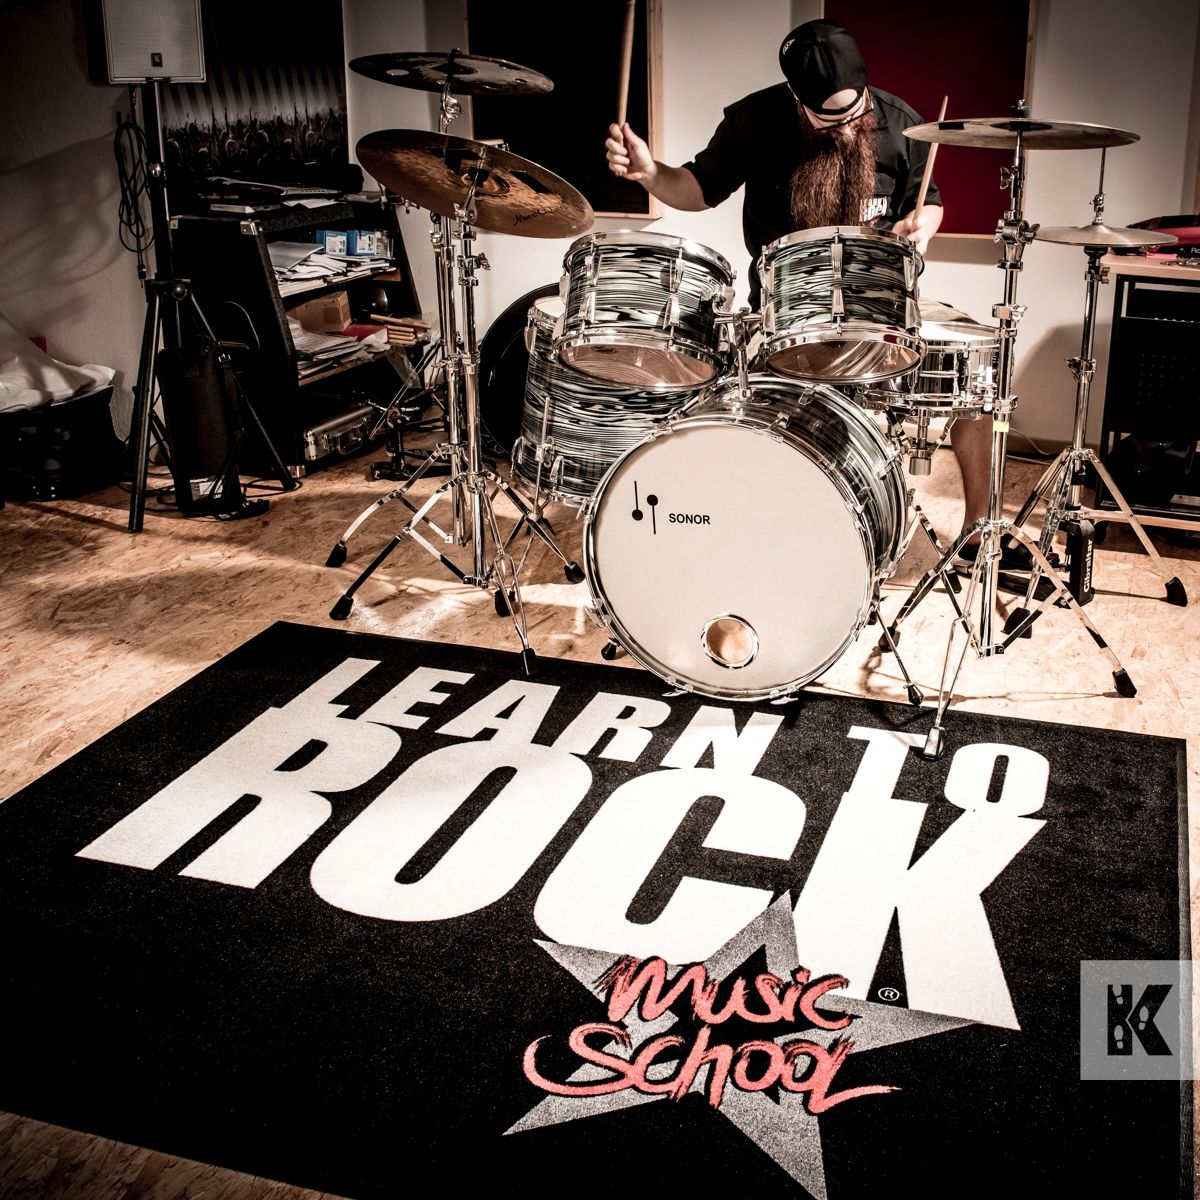 Rock Those Mats Get Your Band Practice Into The Groove With Rockstar Mats To Inspire Kleentexeurope Musicstudio Soundab Sonor Music Studio Mats